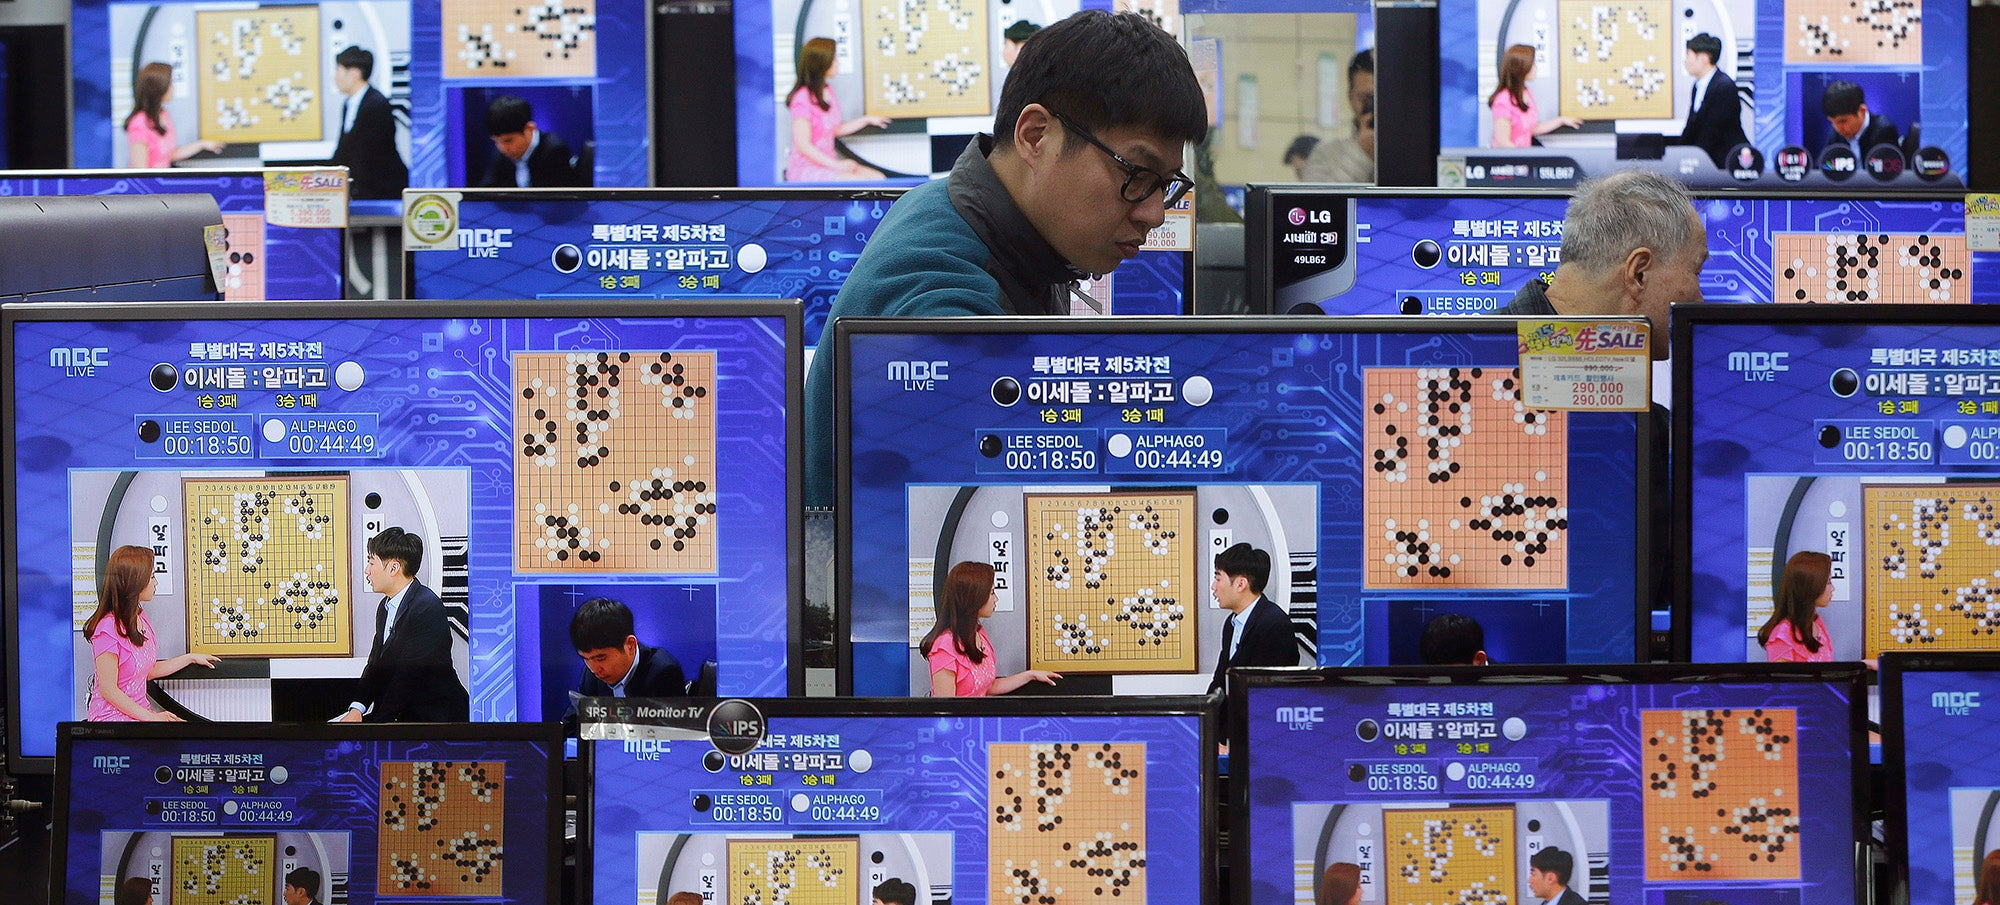 Chinese Engineers Want To Pit Their AI Against AlphaGo